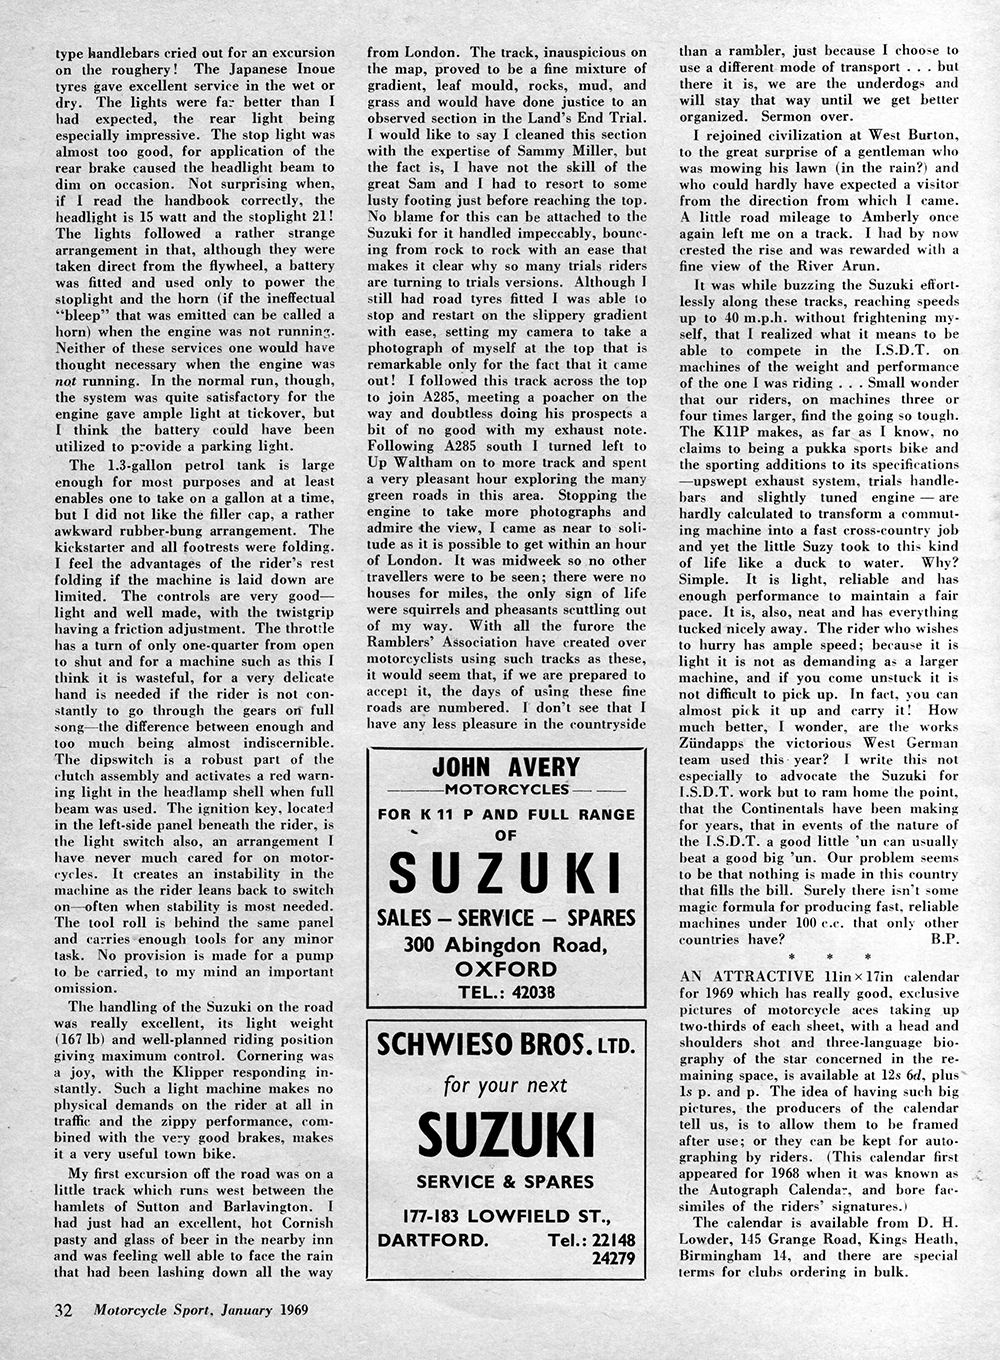 1969 Suzuki Klipper road test 3.jpg